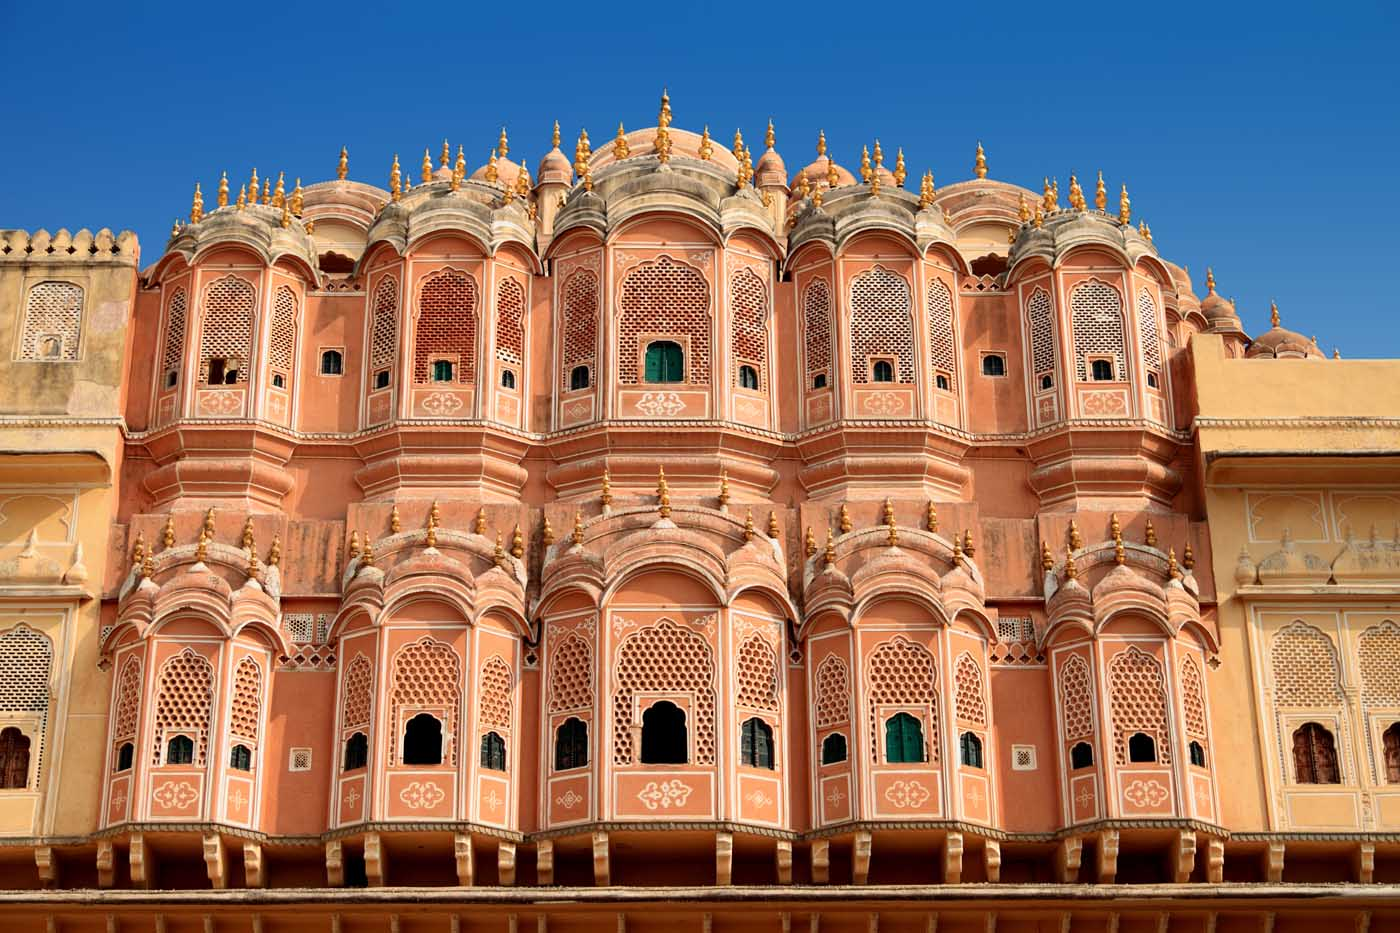 Jaipur Travel Cost - Average Price of a Vacation to Jaipur